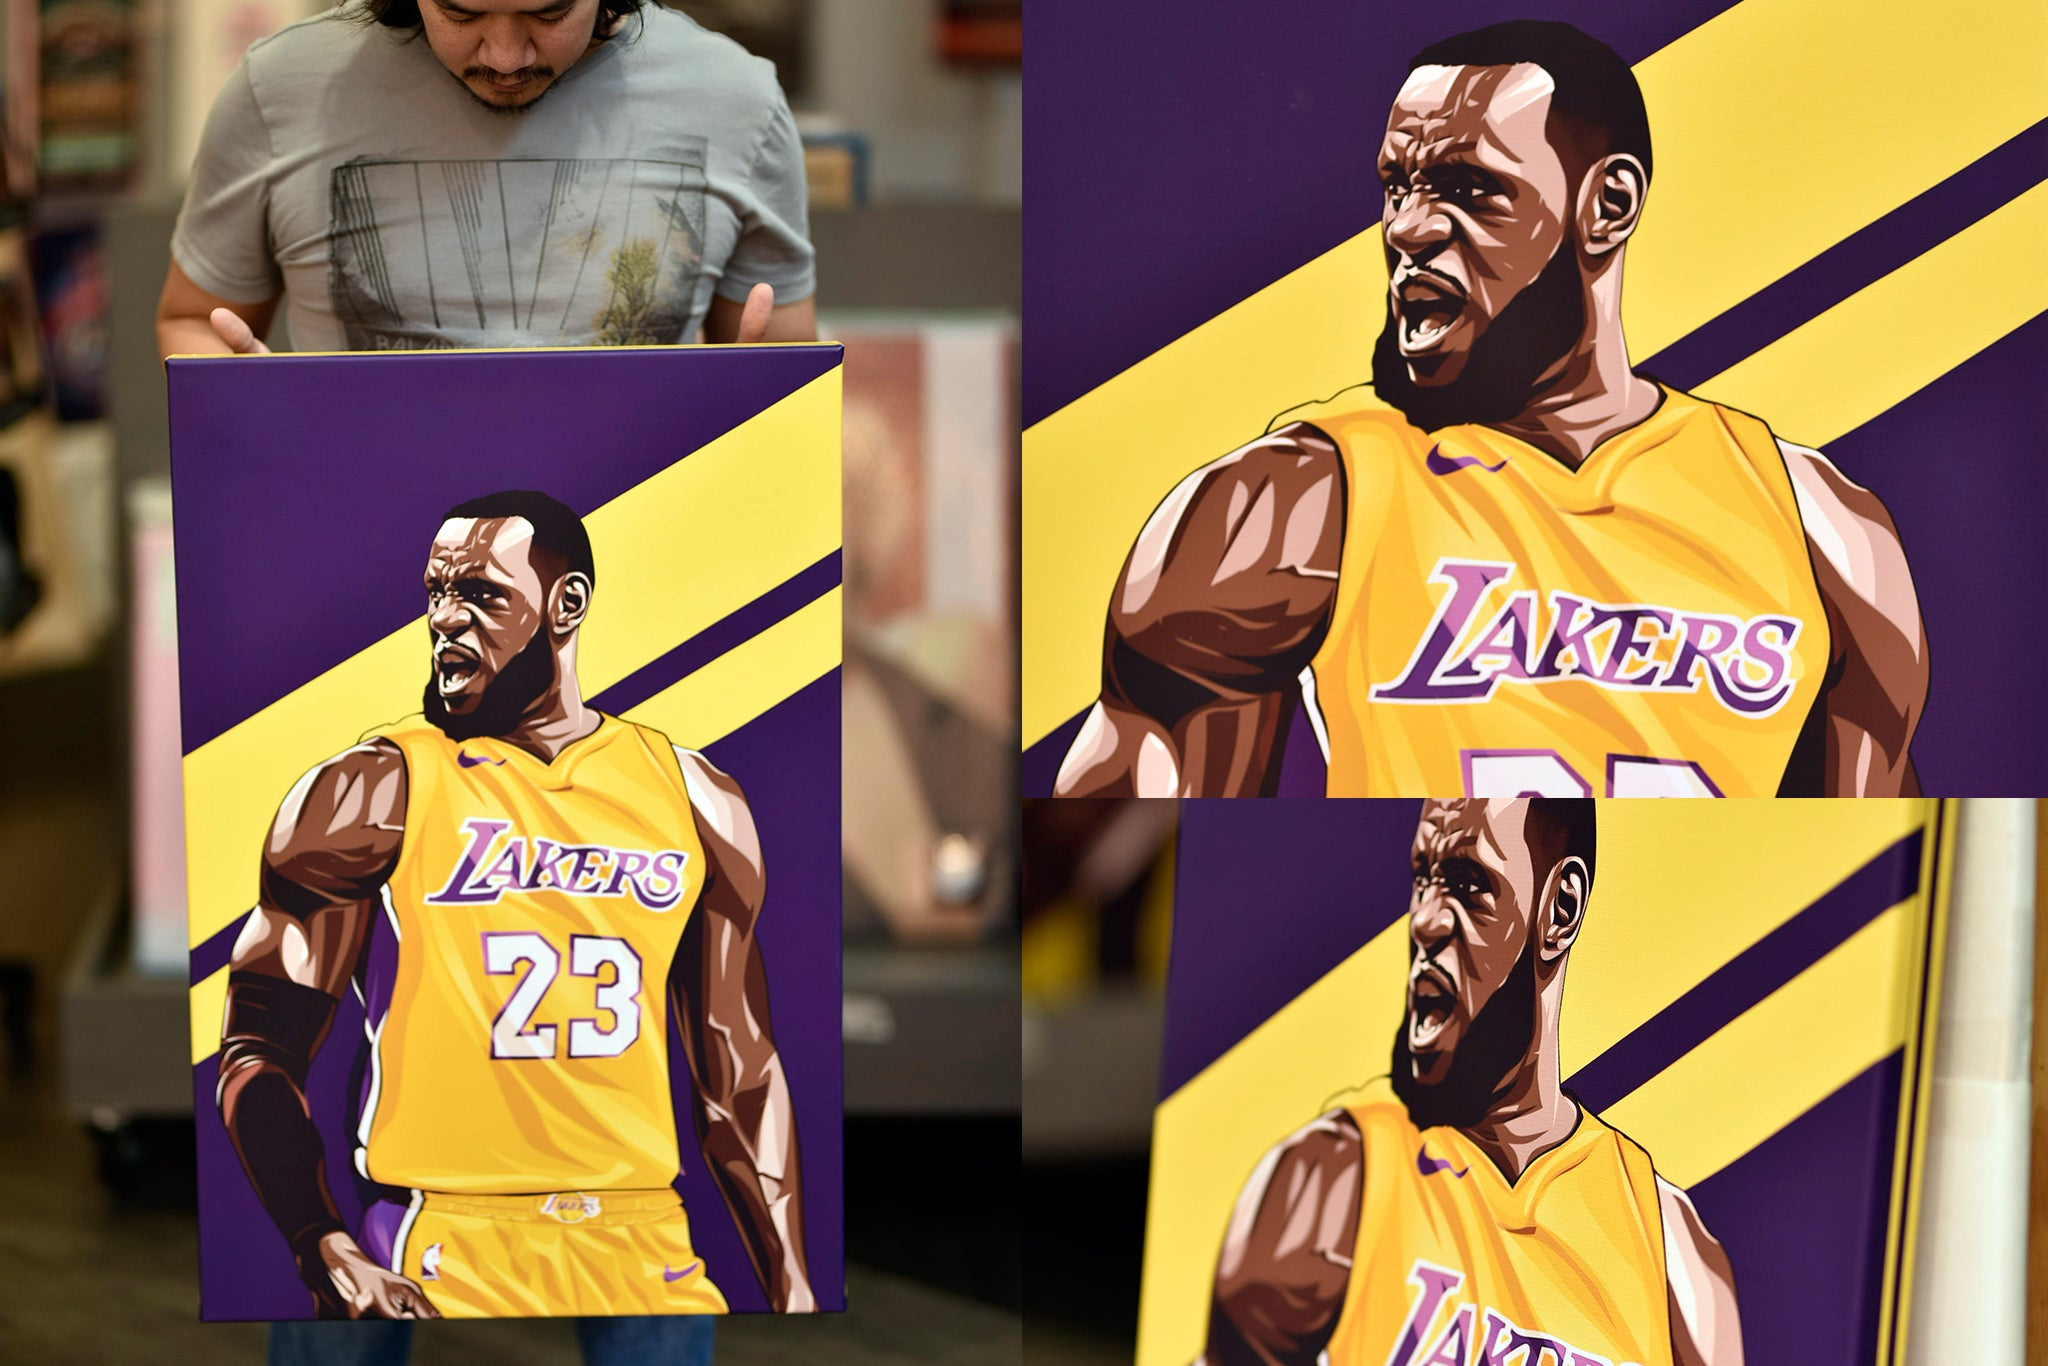 promo code 5a03e 35af8 Lebron James Artwork Printed On Museum Quality Canvas - Art ...